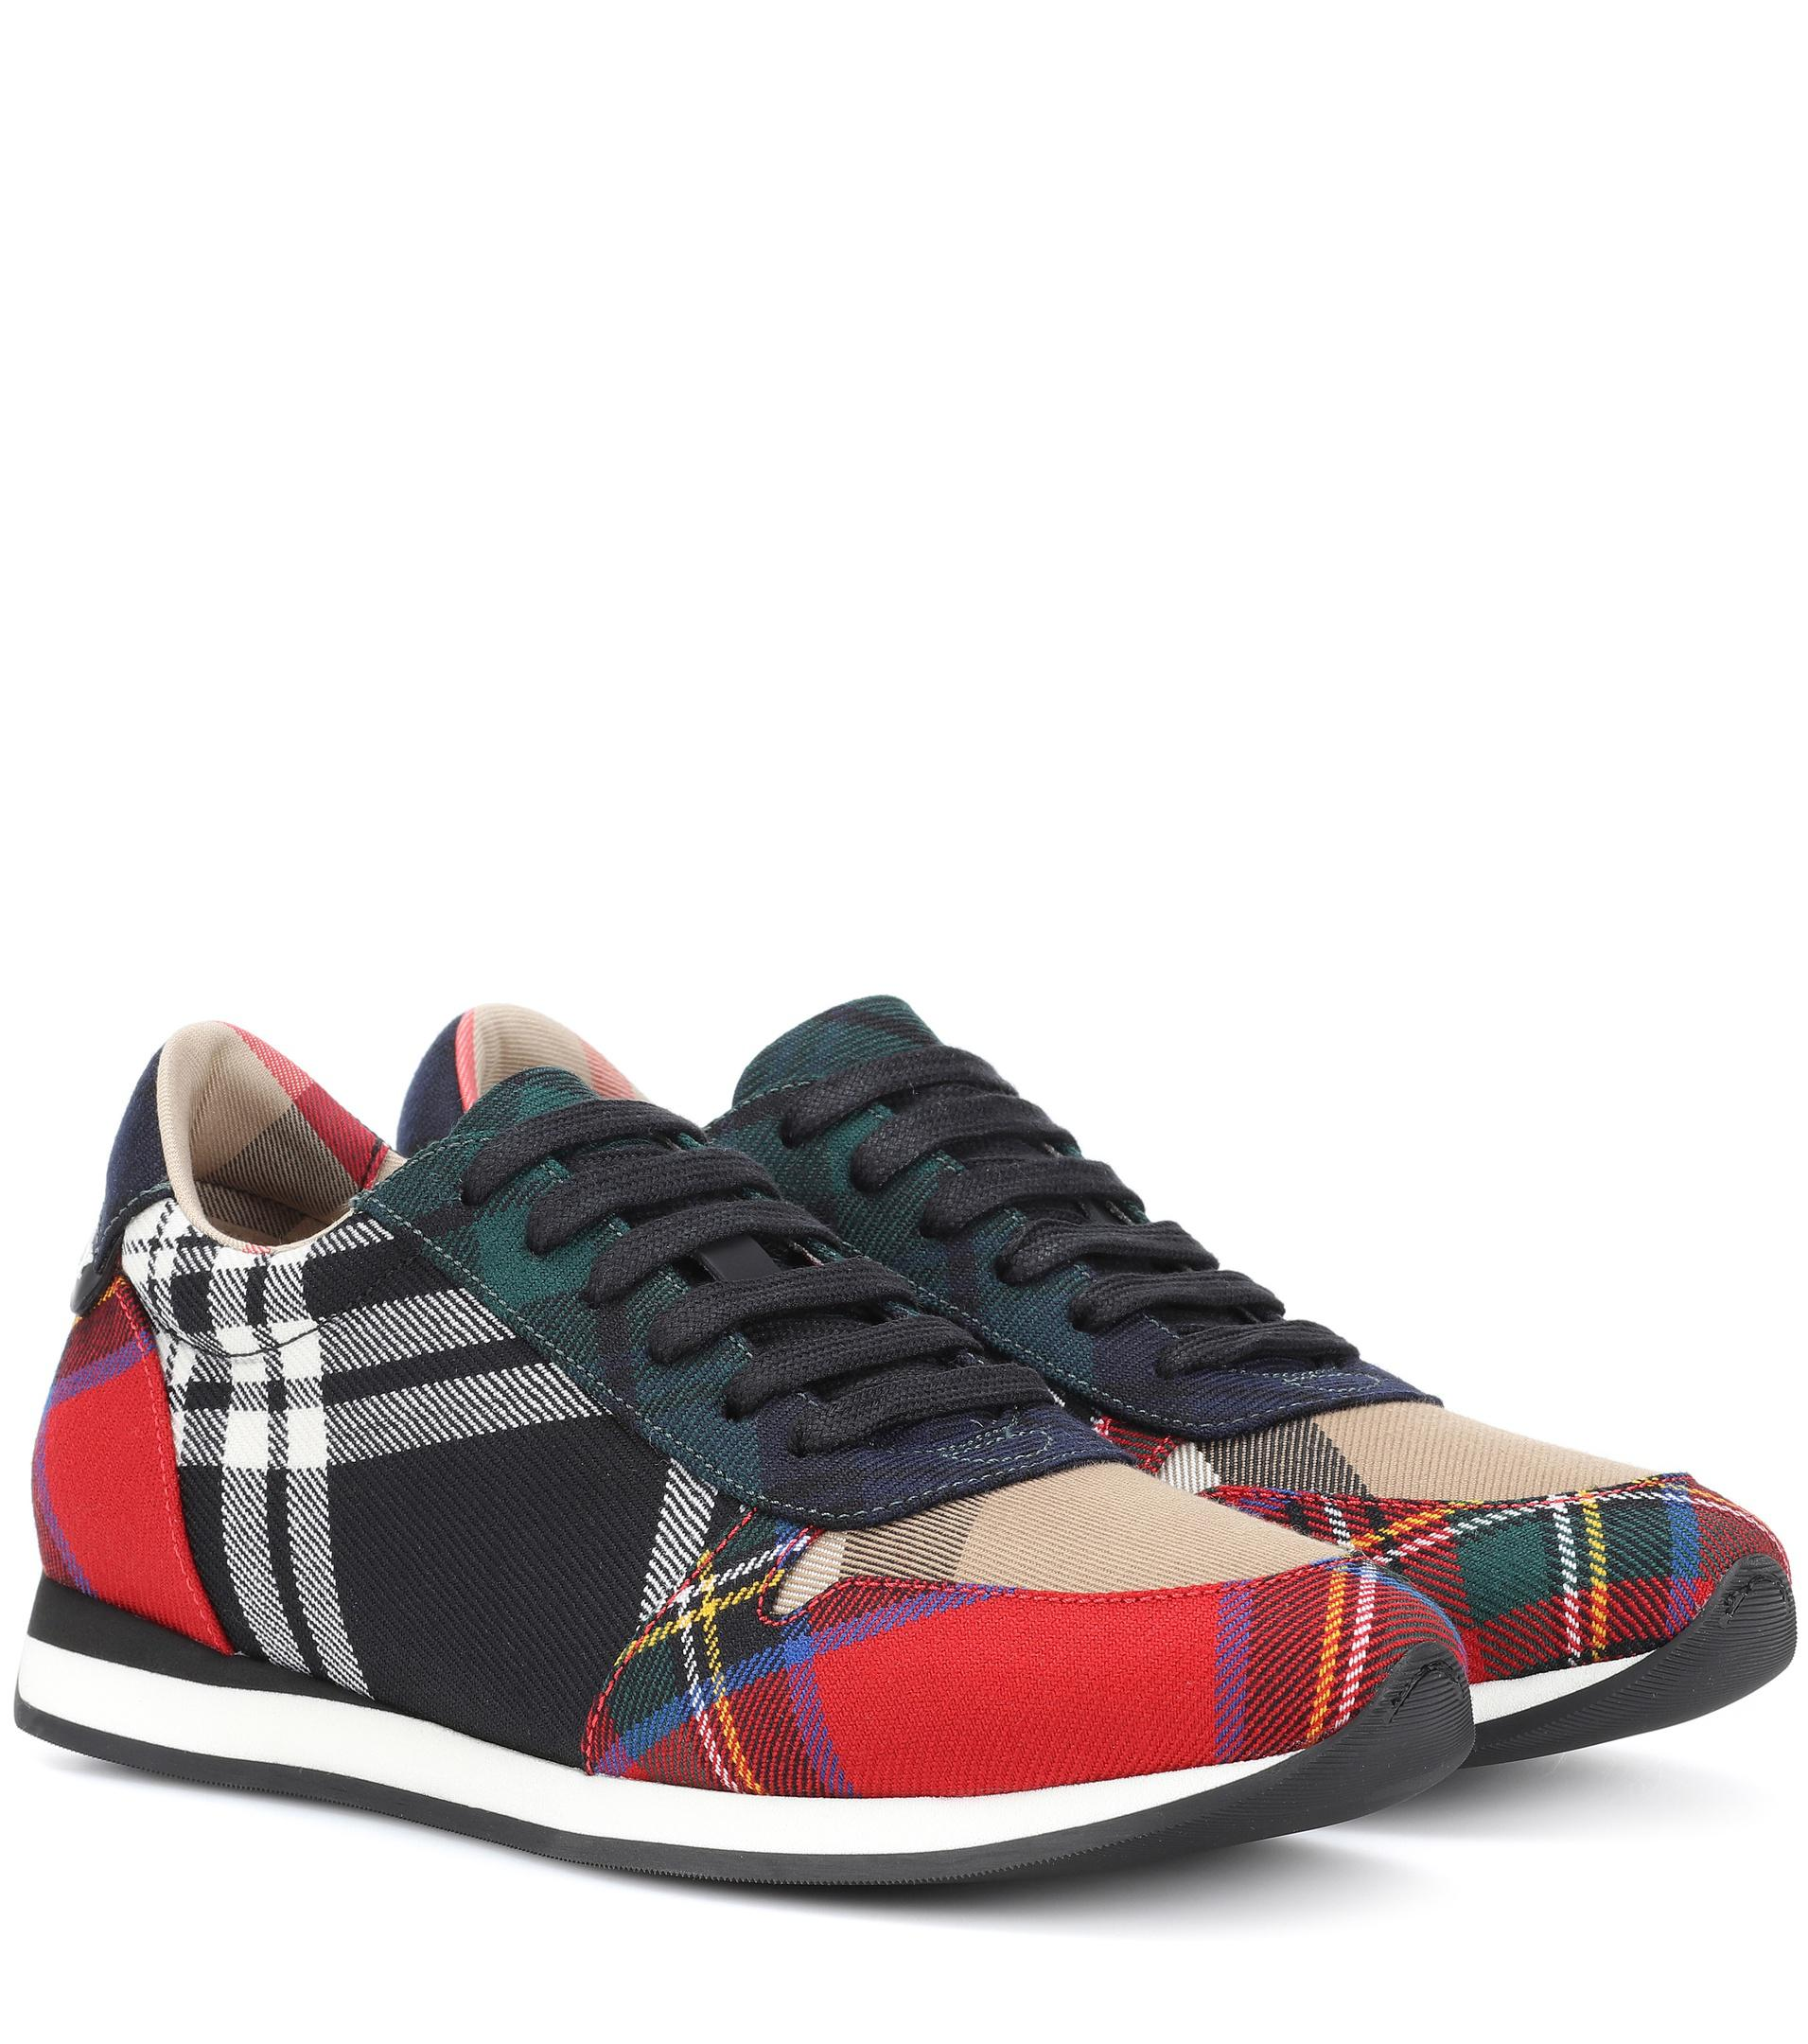 Burberry Amelia check sneakers real cheap online free shipping great deals Rsn21tDG